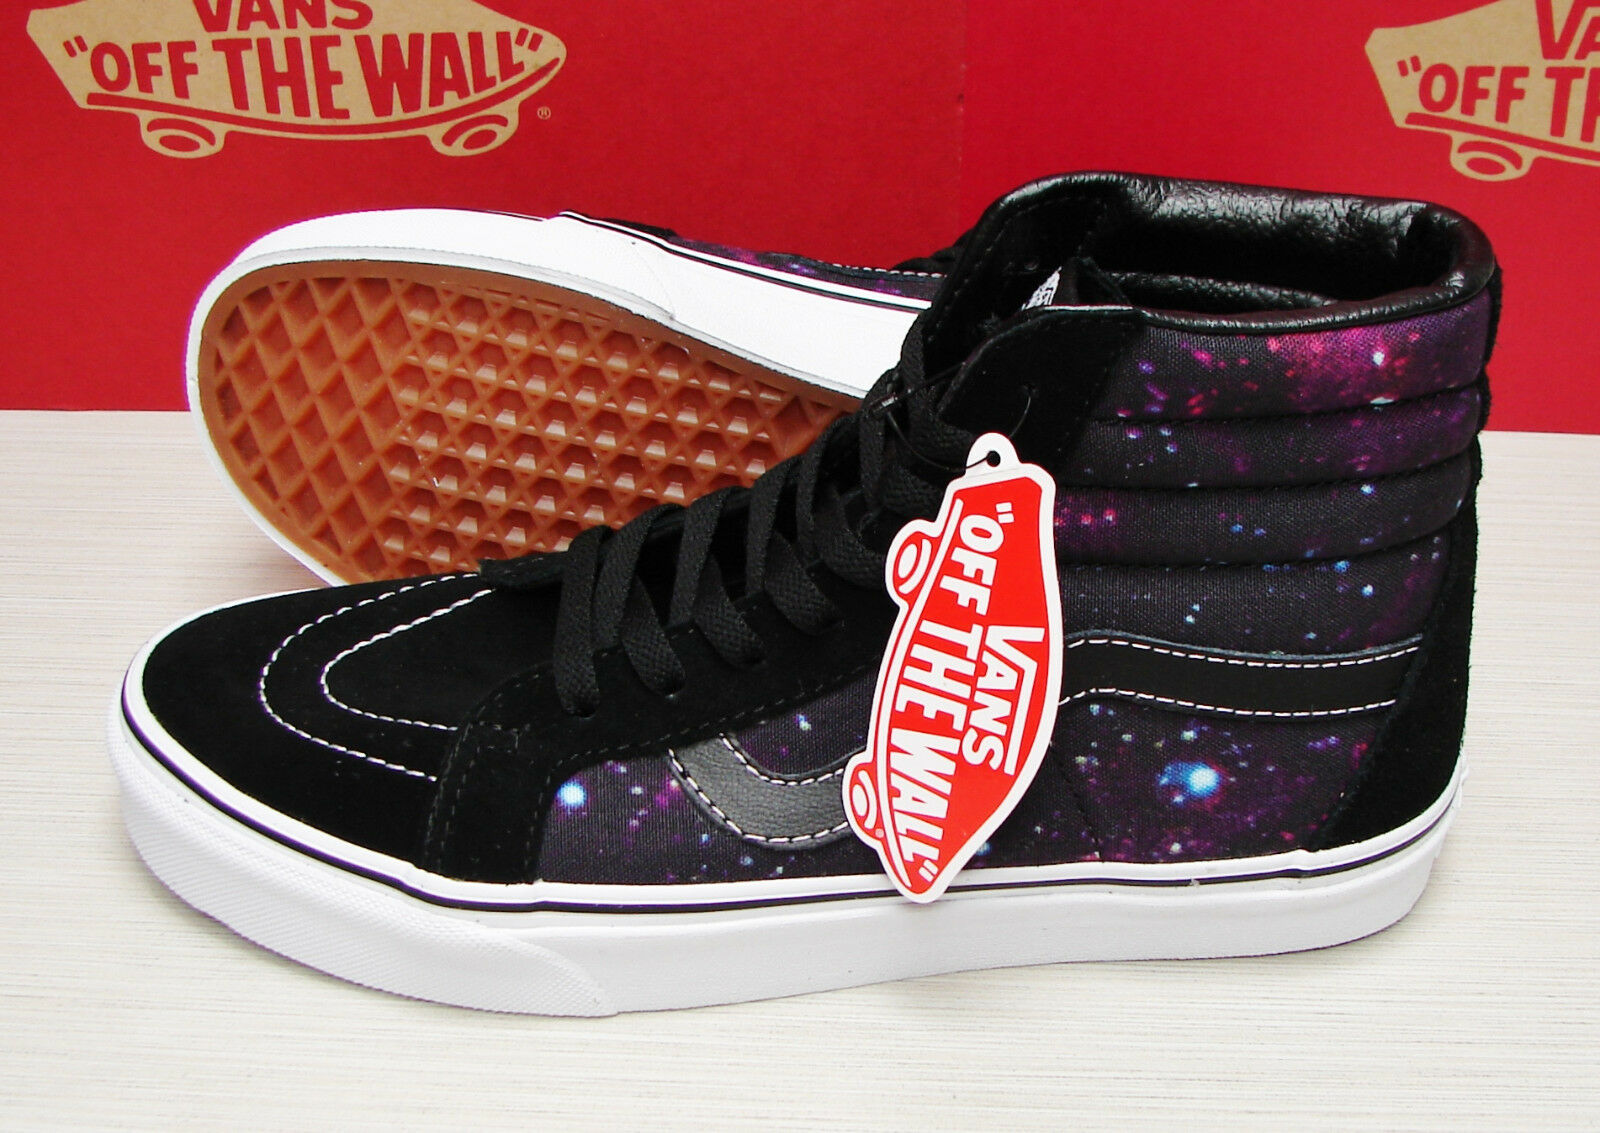 Vans SK8 Hi Cosmic Black True White   VN-0ZA0EQ8  Men's Size: 10